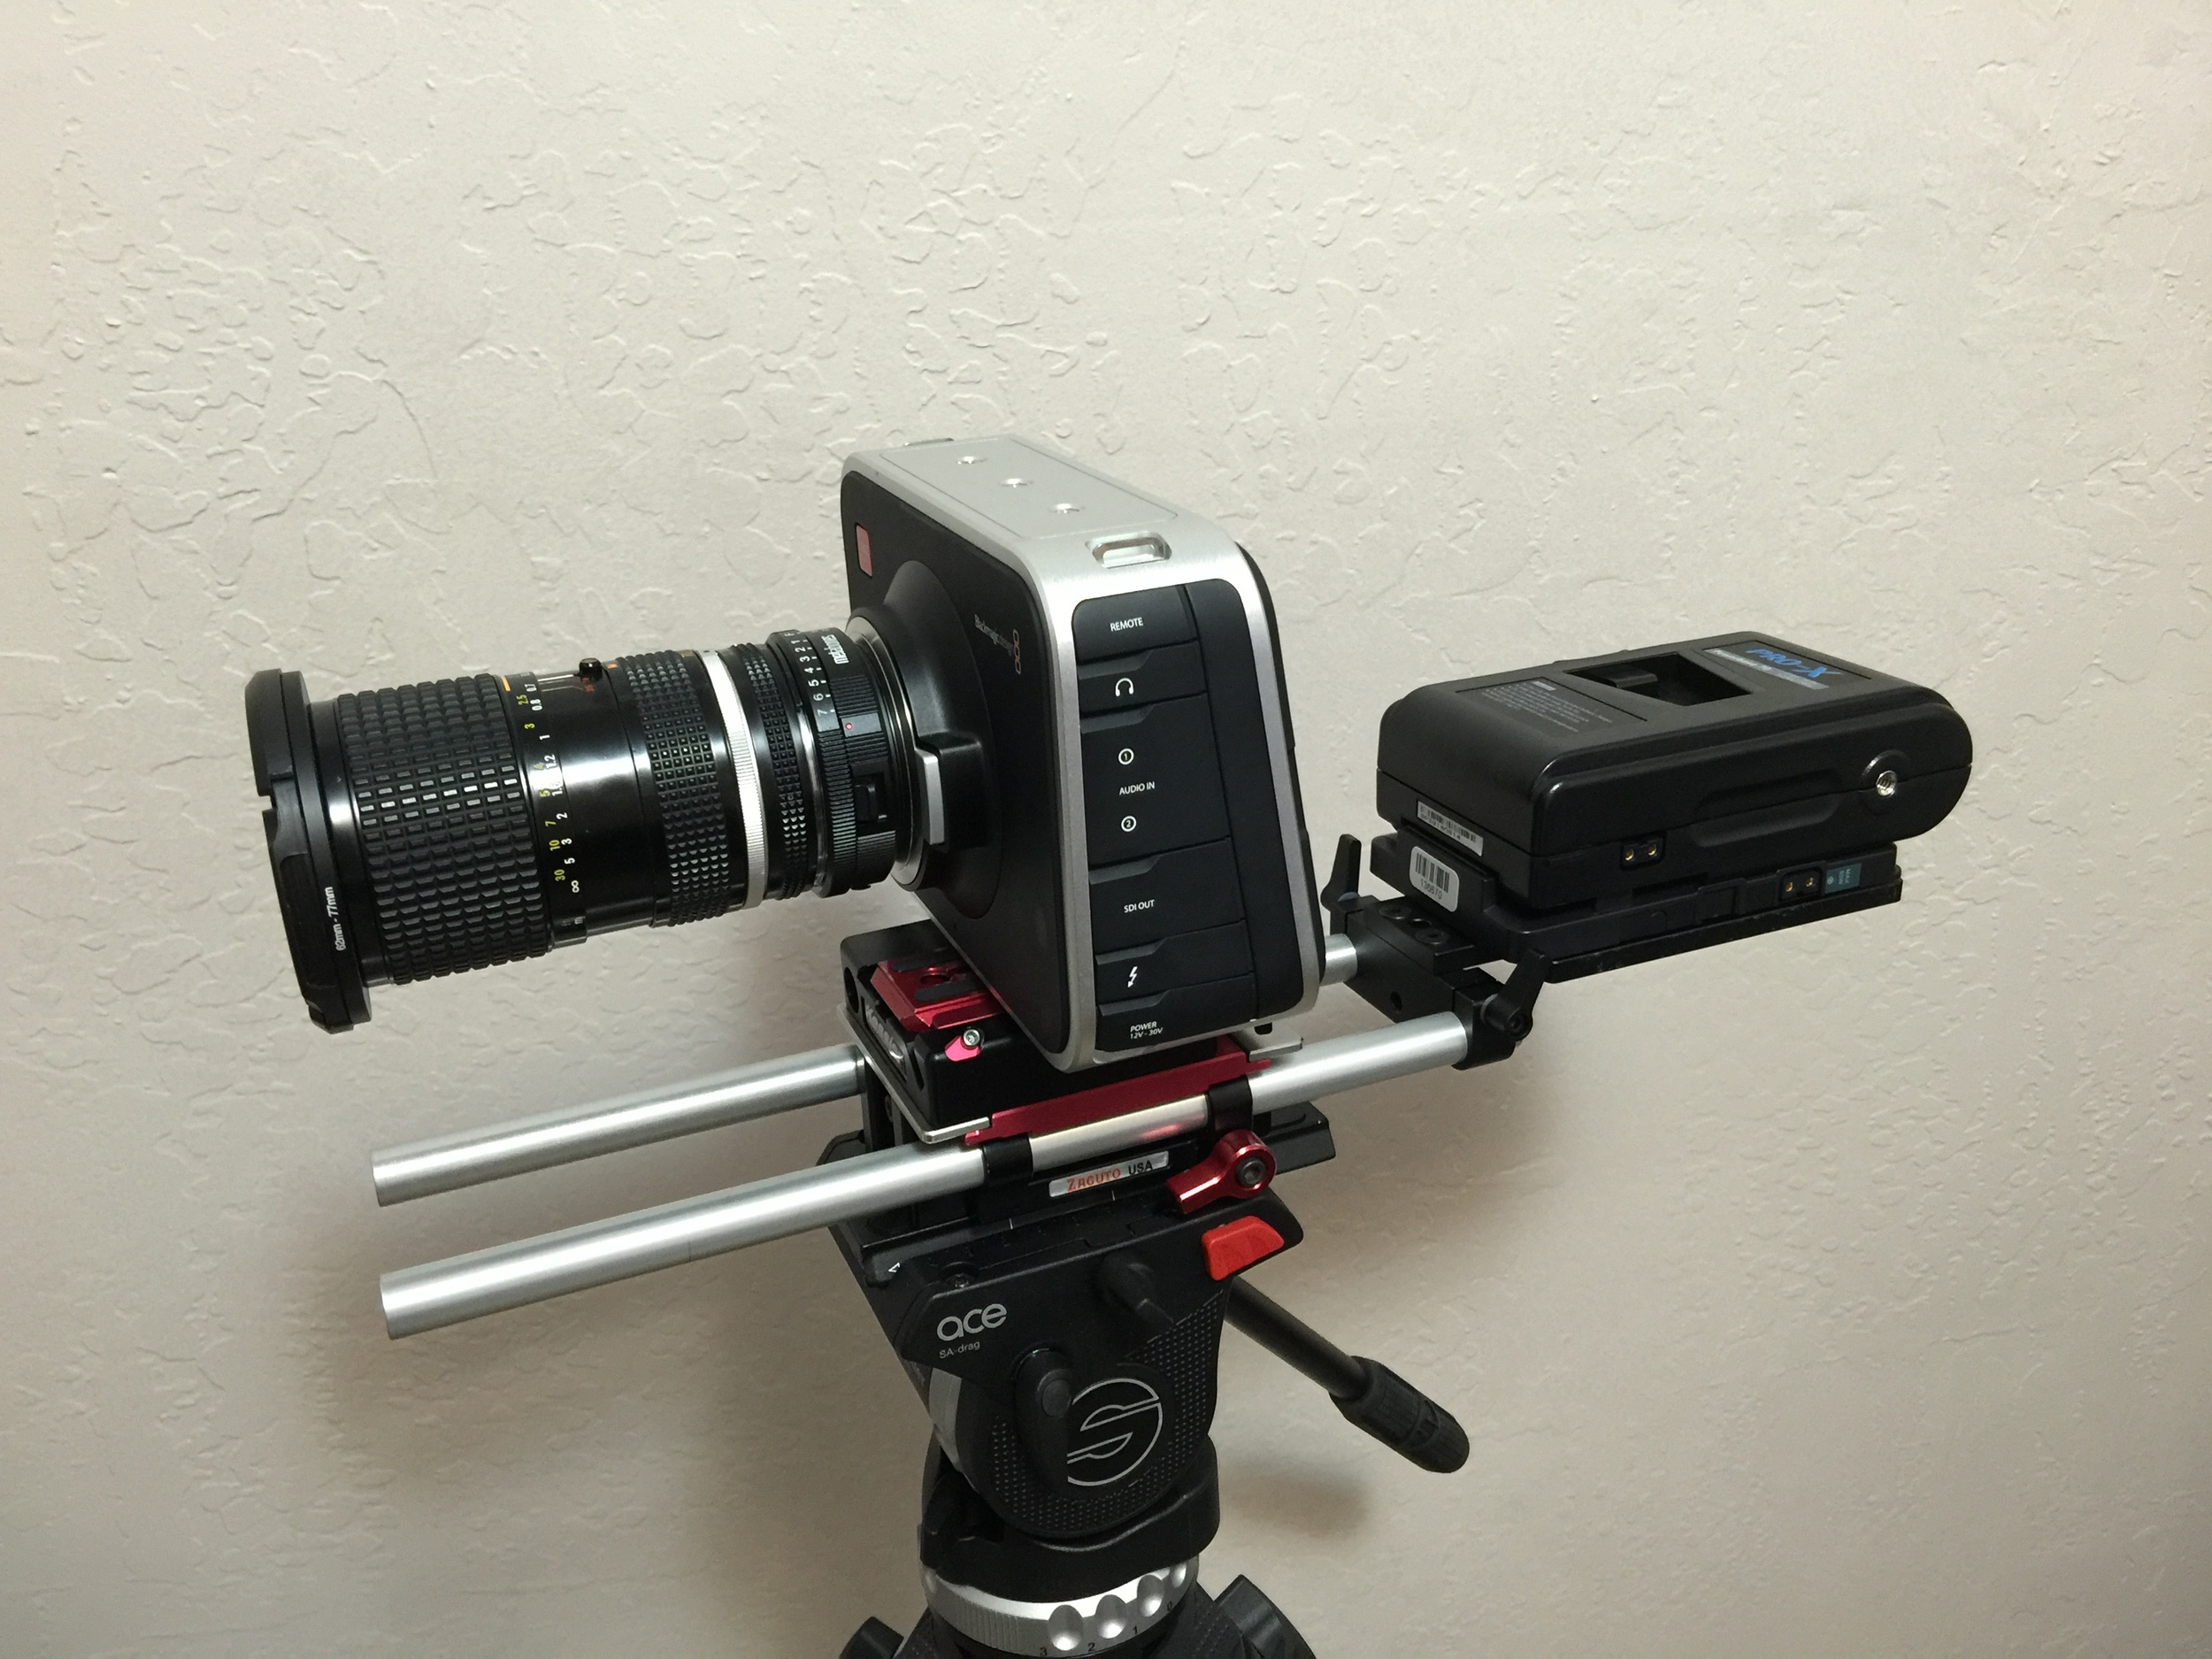 Quick release camera body from tripod to gimbal, jib, slider, etc.